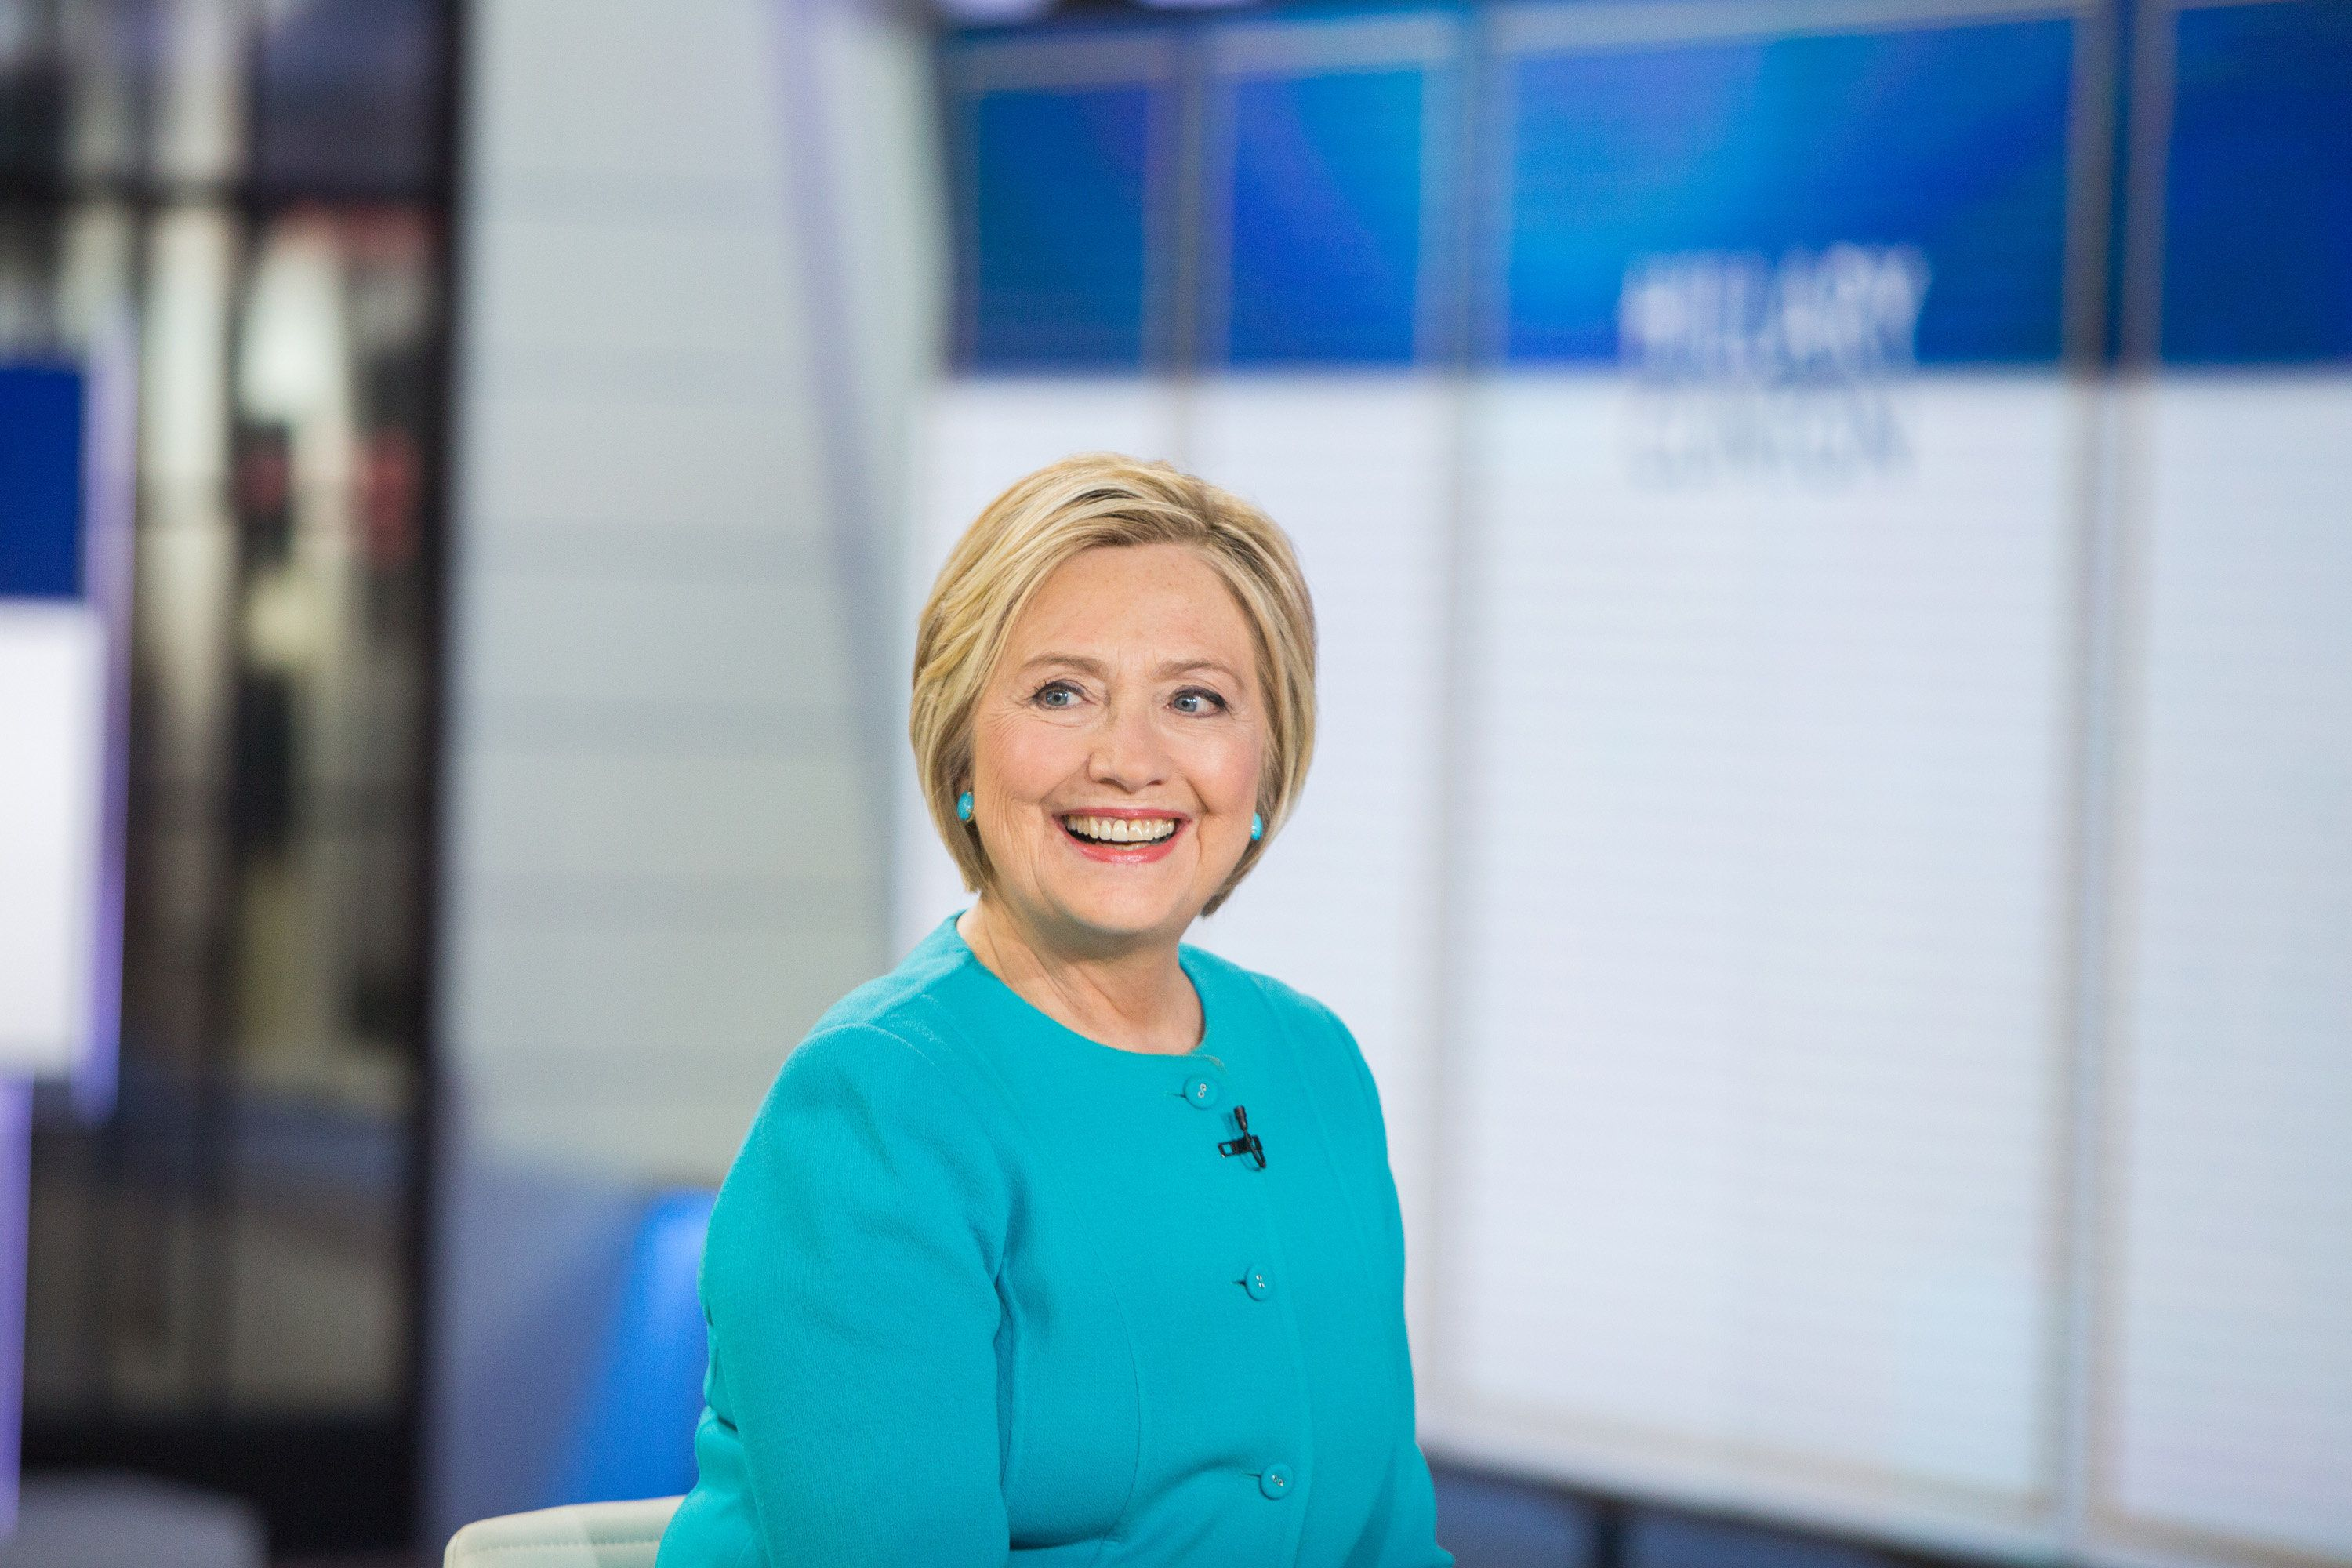 Why Hillary Clinton Was 'Shocked' Over Her Campaign Beauty